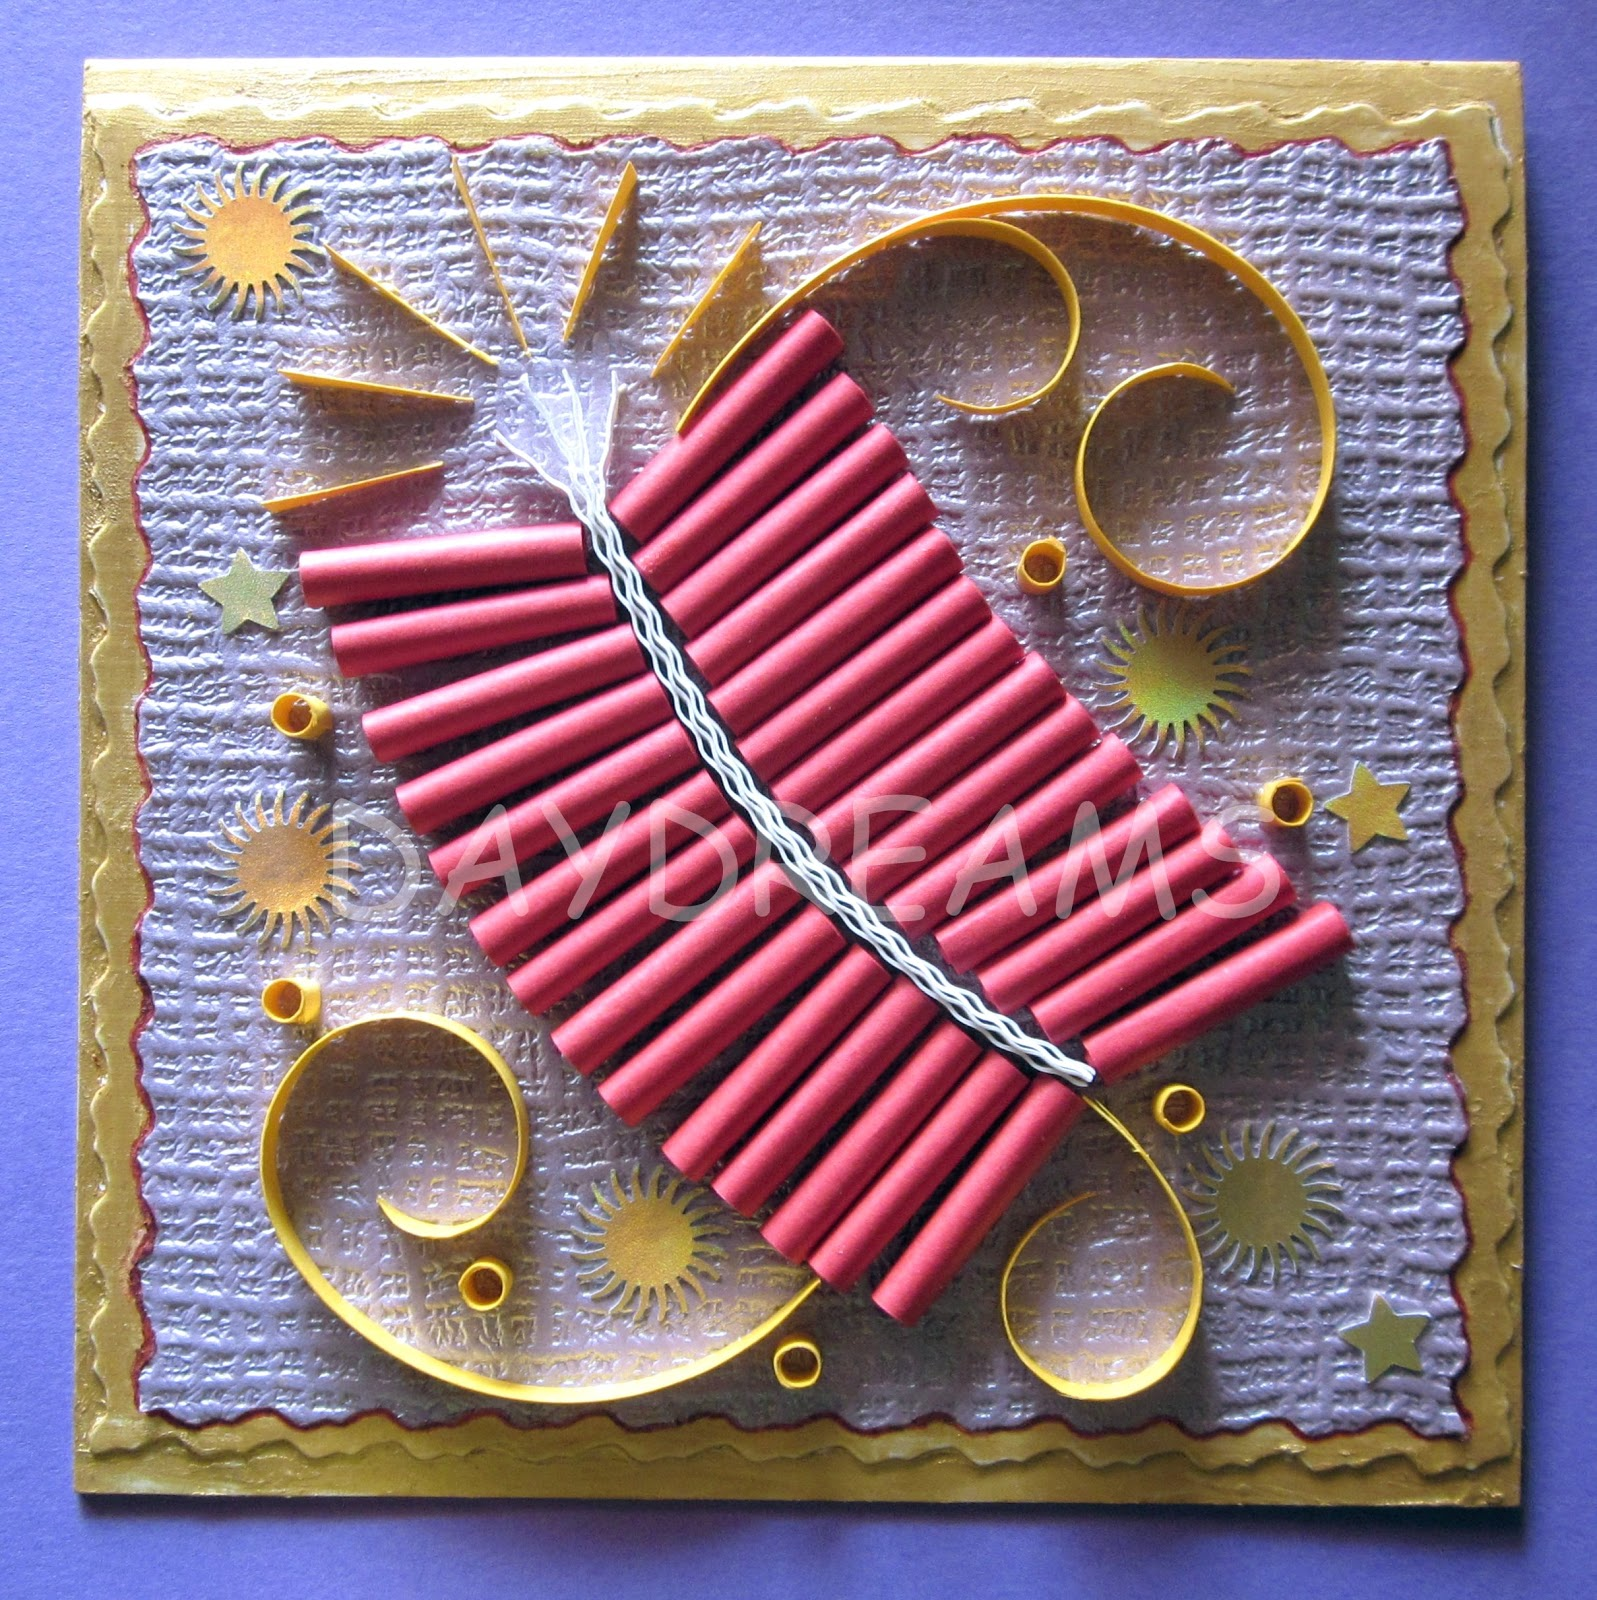 Some Ideas For Making Cards Part - 43: Diwali Fire Cracker Card | 15+ Diwali Card Making Ideas For Kids - Kandils,